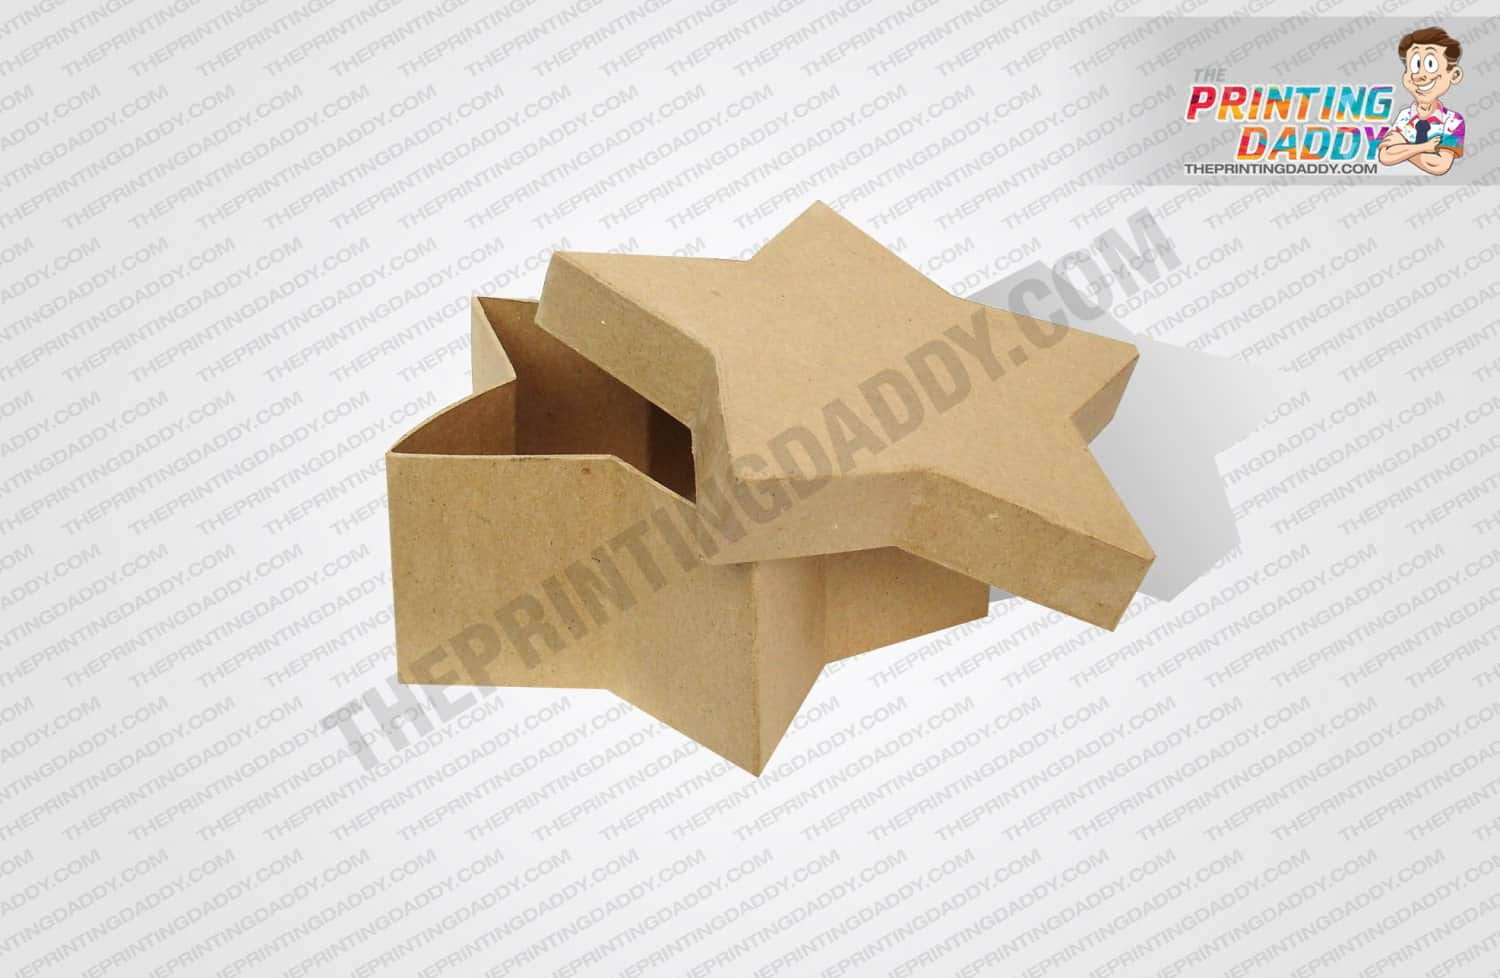 Round & Oval Shape Box The Printing Daddy